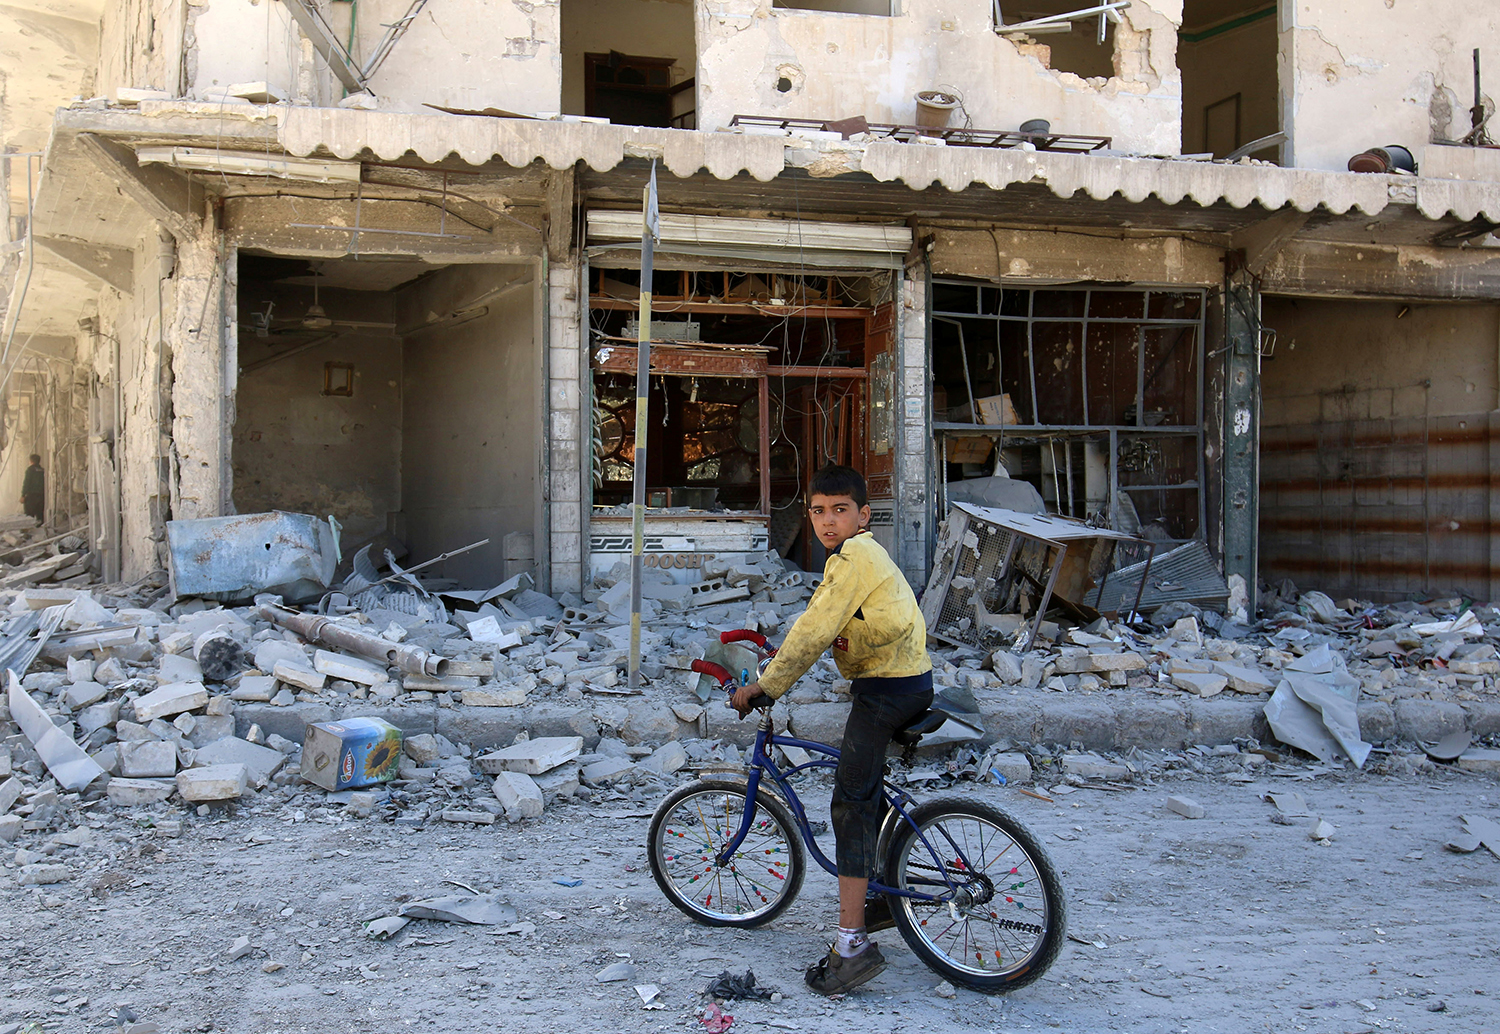 ALEPPO 2016-09-25 A boy sits on a bicycle in front of damaged shops after an airstrike on the rebel held al-Qaterji neighbourhood of Aleppo, Syria September 25, 2016. REUTERS/Abdalrhman Ismail Photo: / REUTERS / TT / kod 72000